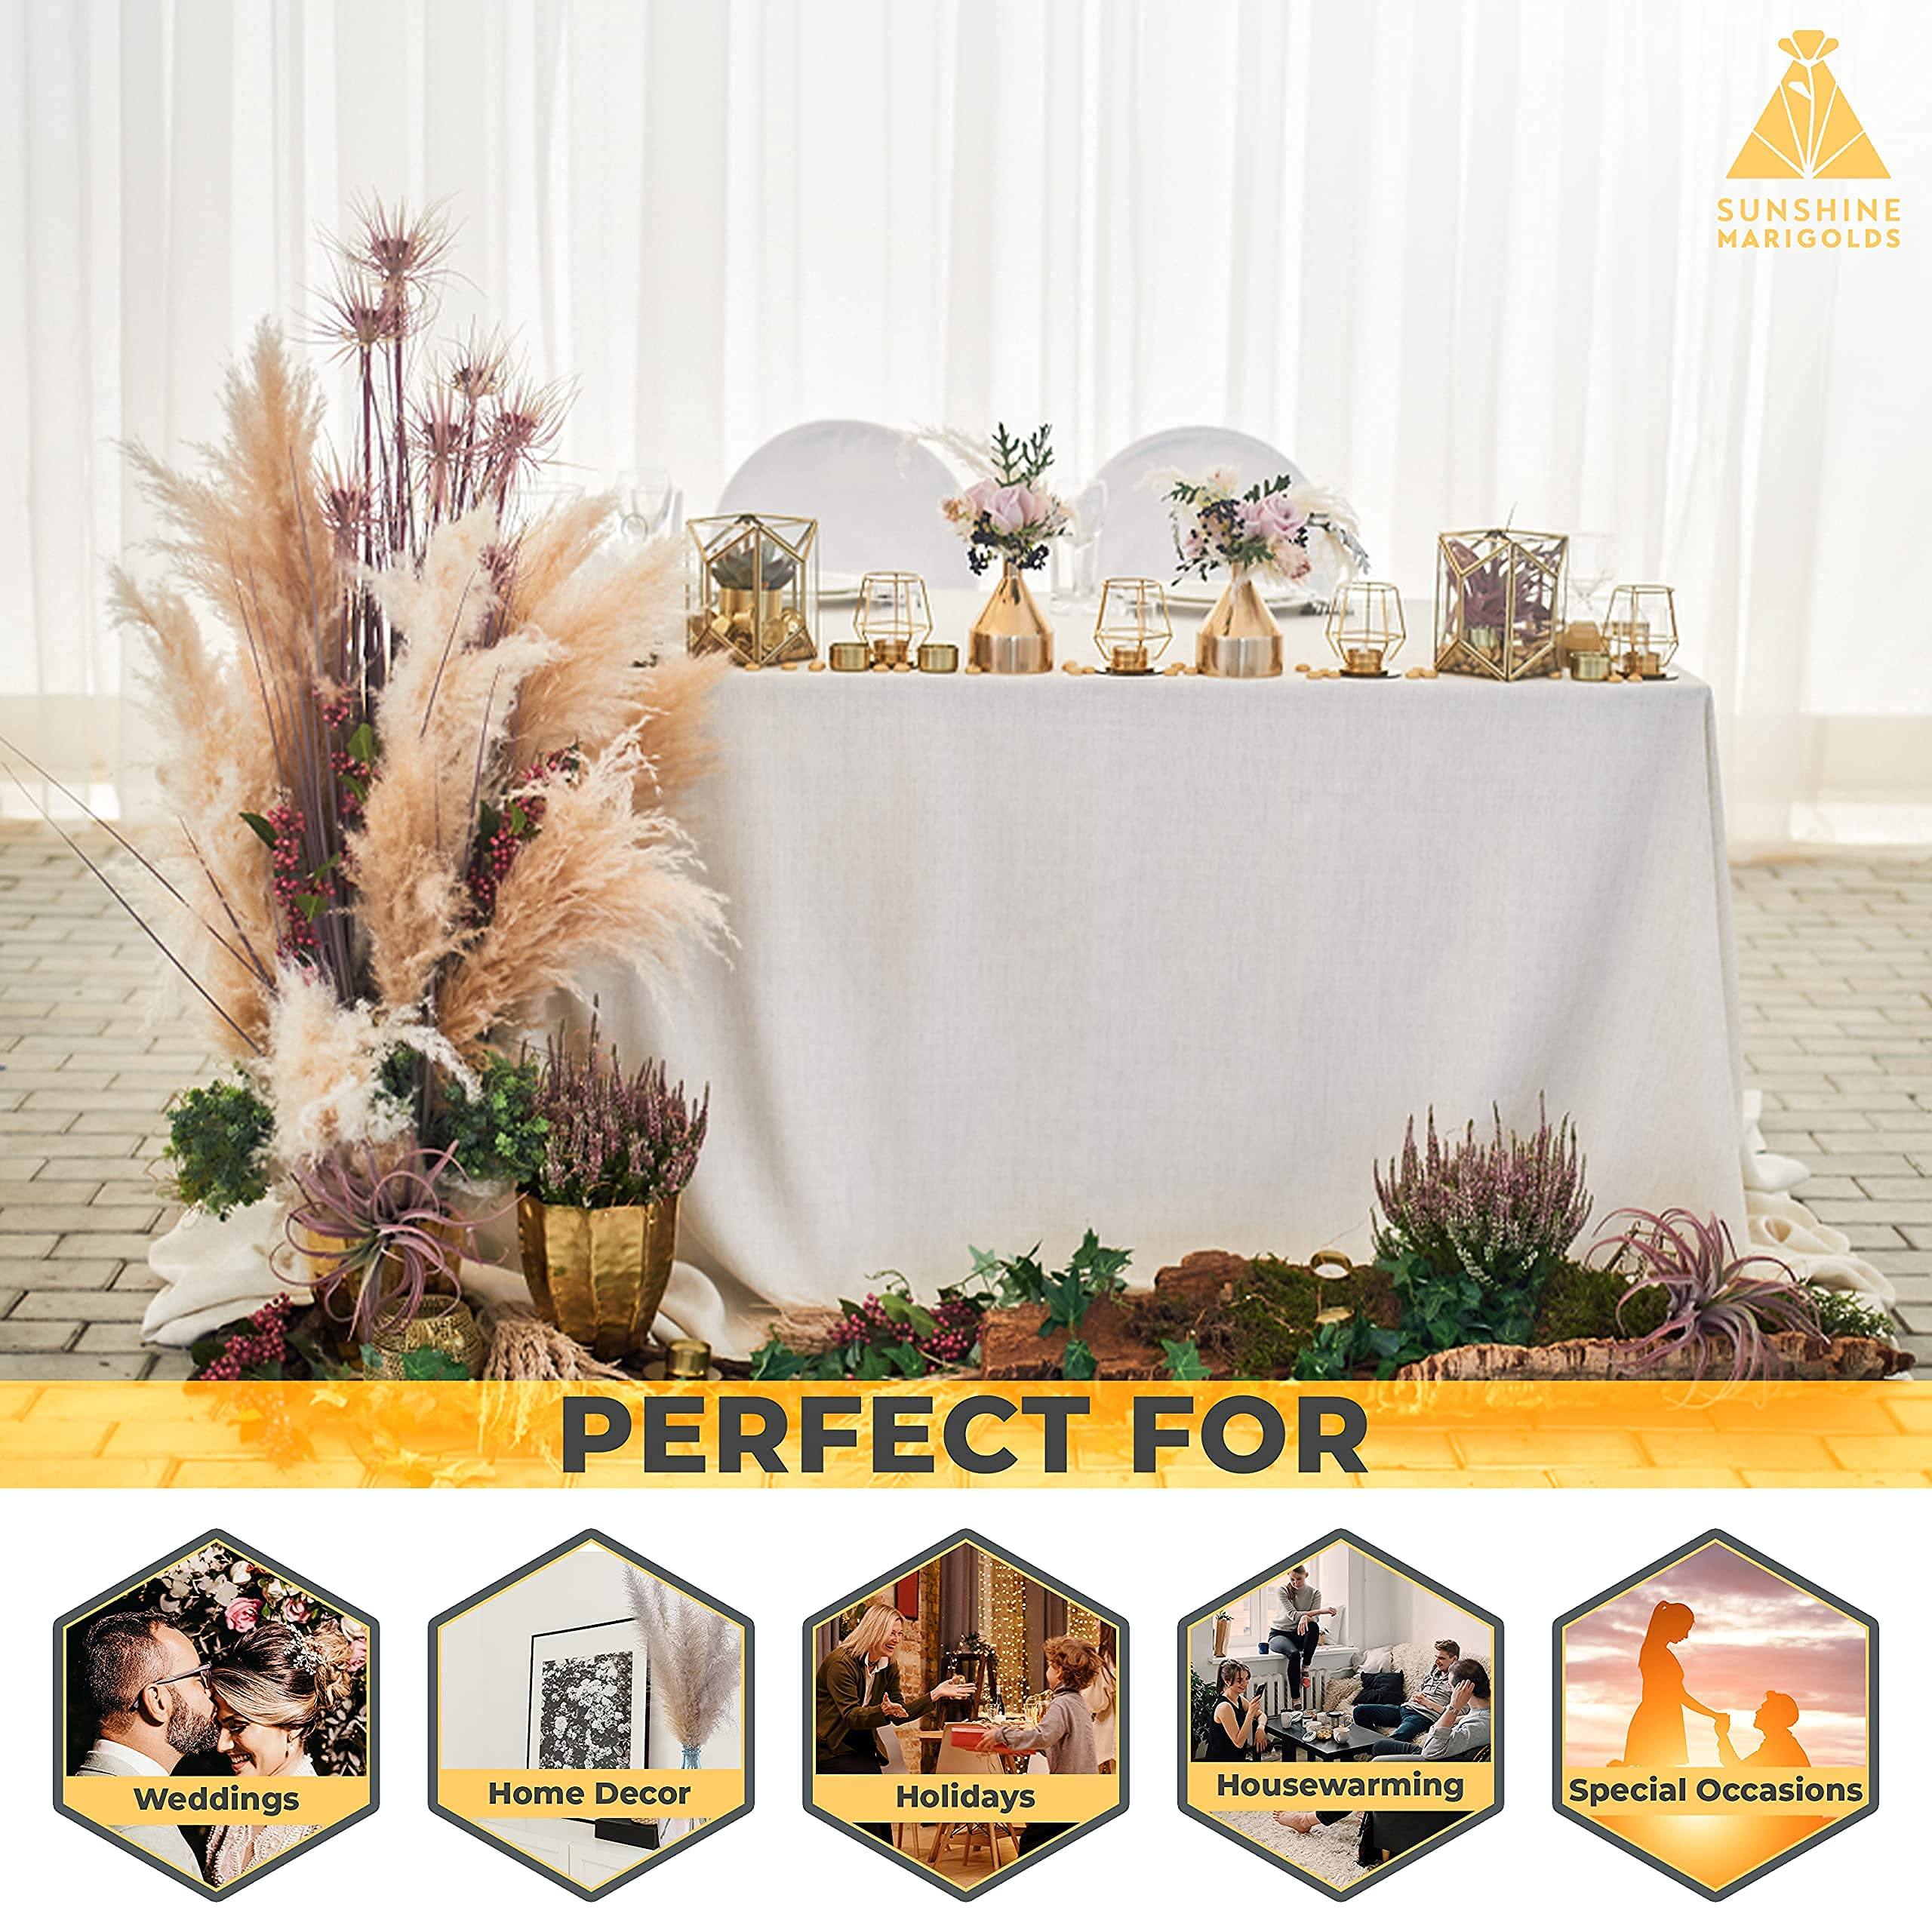 """Sunshine Marigolds Six (6) Tall Stems 4ft Long (48"""") Large Pampas Grass 2021 Best Award Jumbo Extra-Fluffy Plumes Naturally Dried Light Beige for Home, Wedding, Gifts Boho Decor, Floral Arrangements"""